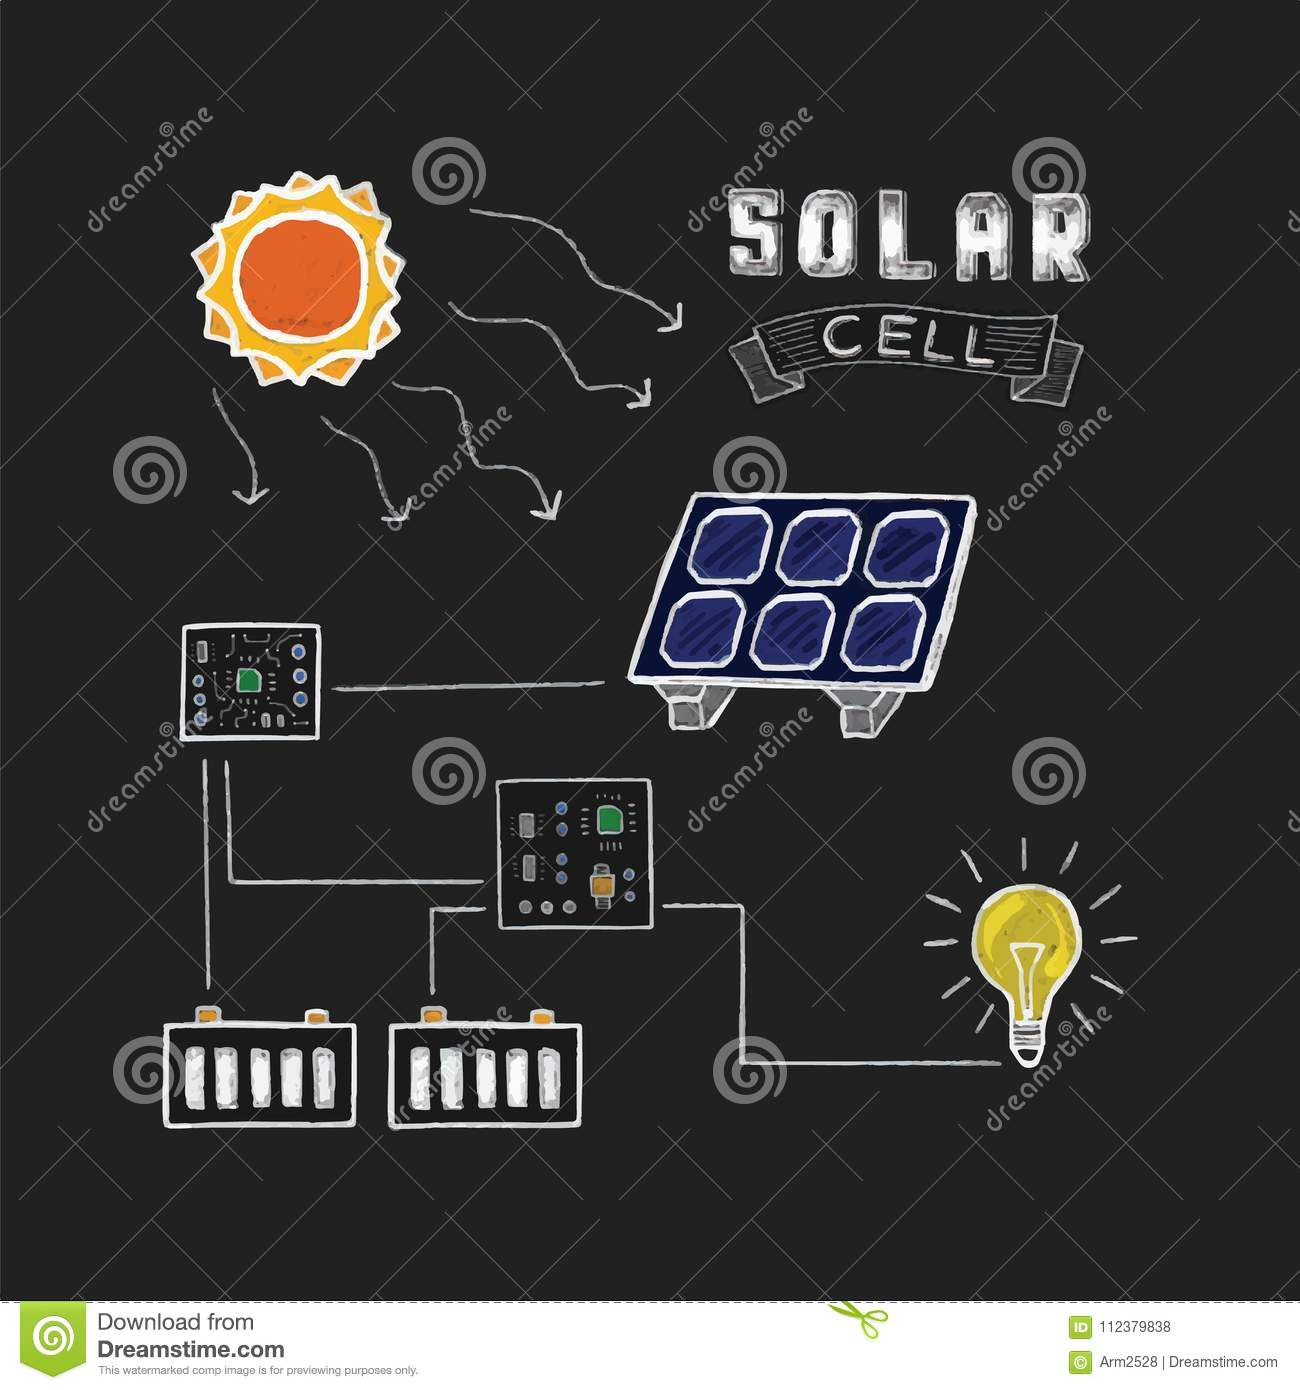 hight resolution of solar cell system with simple circuit diagram